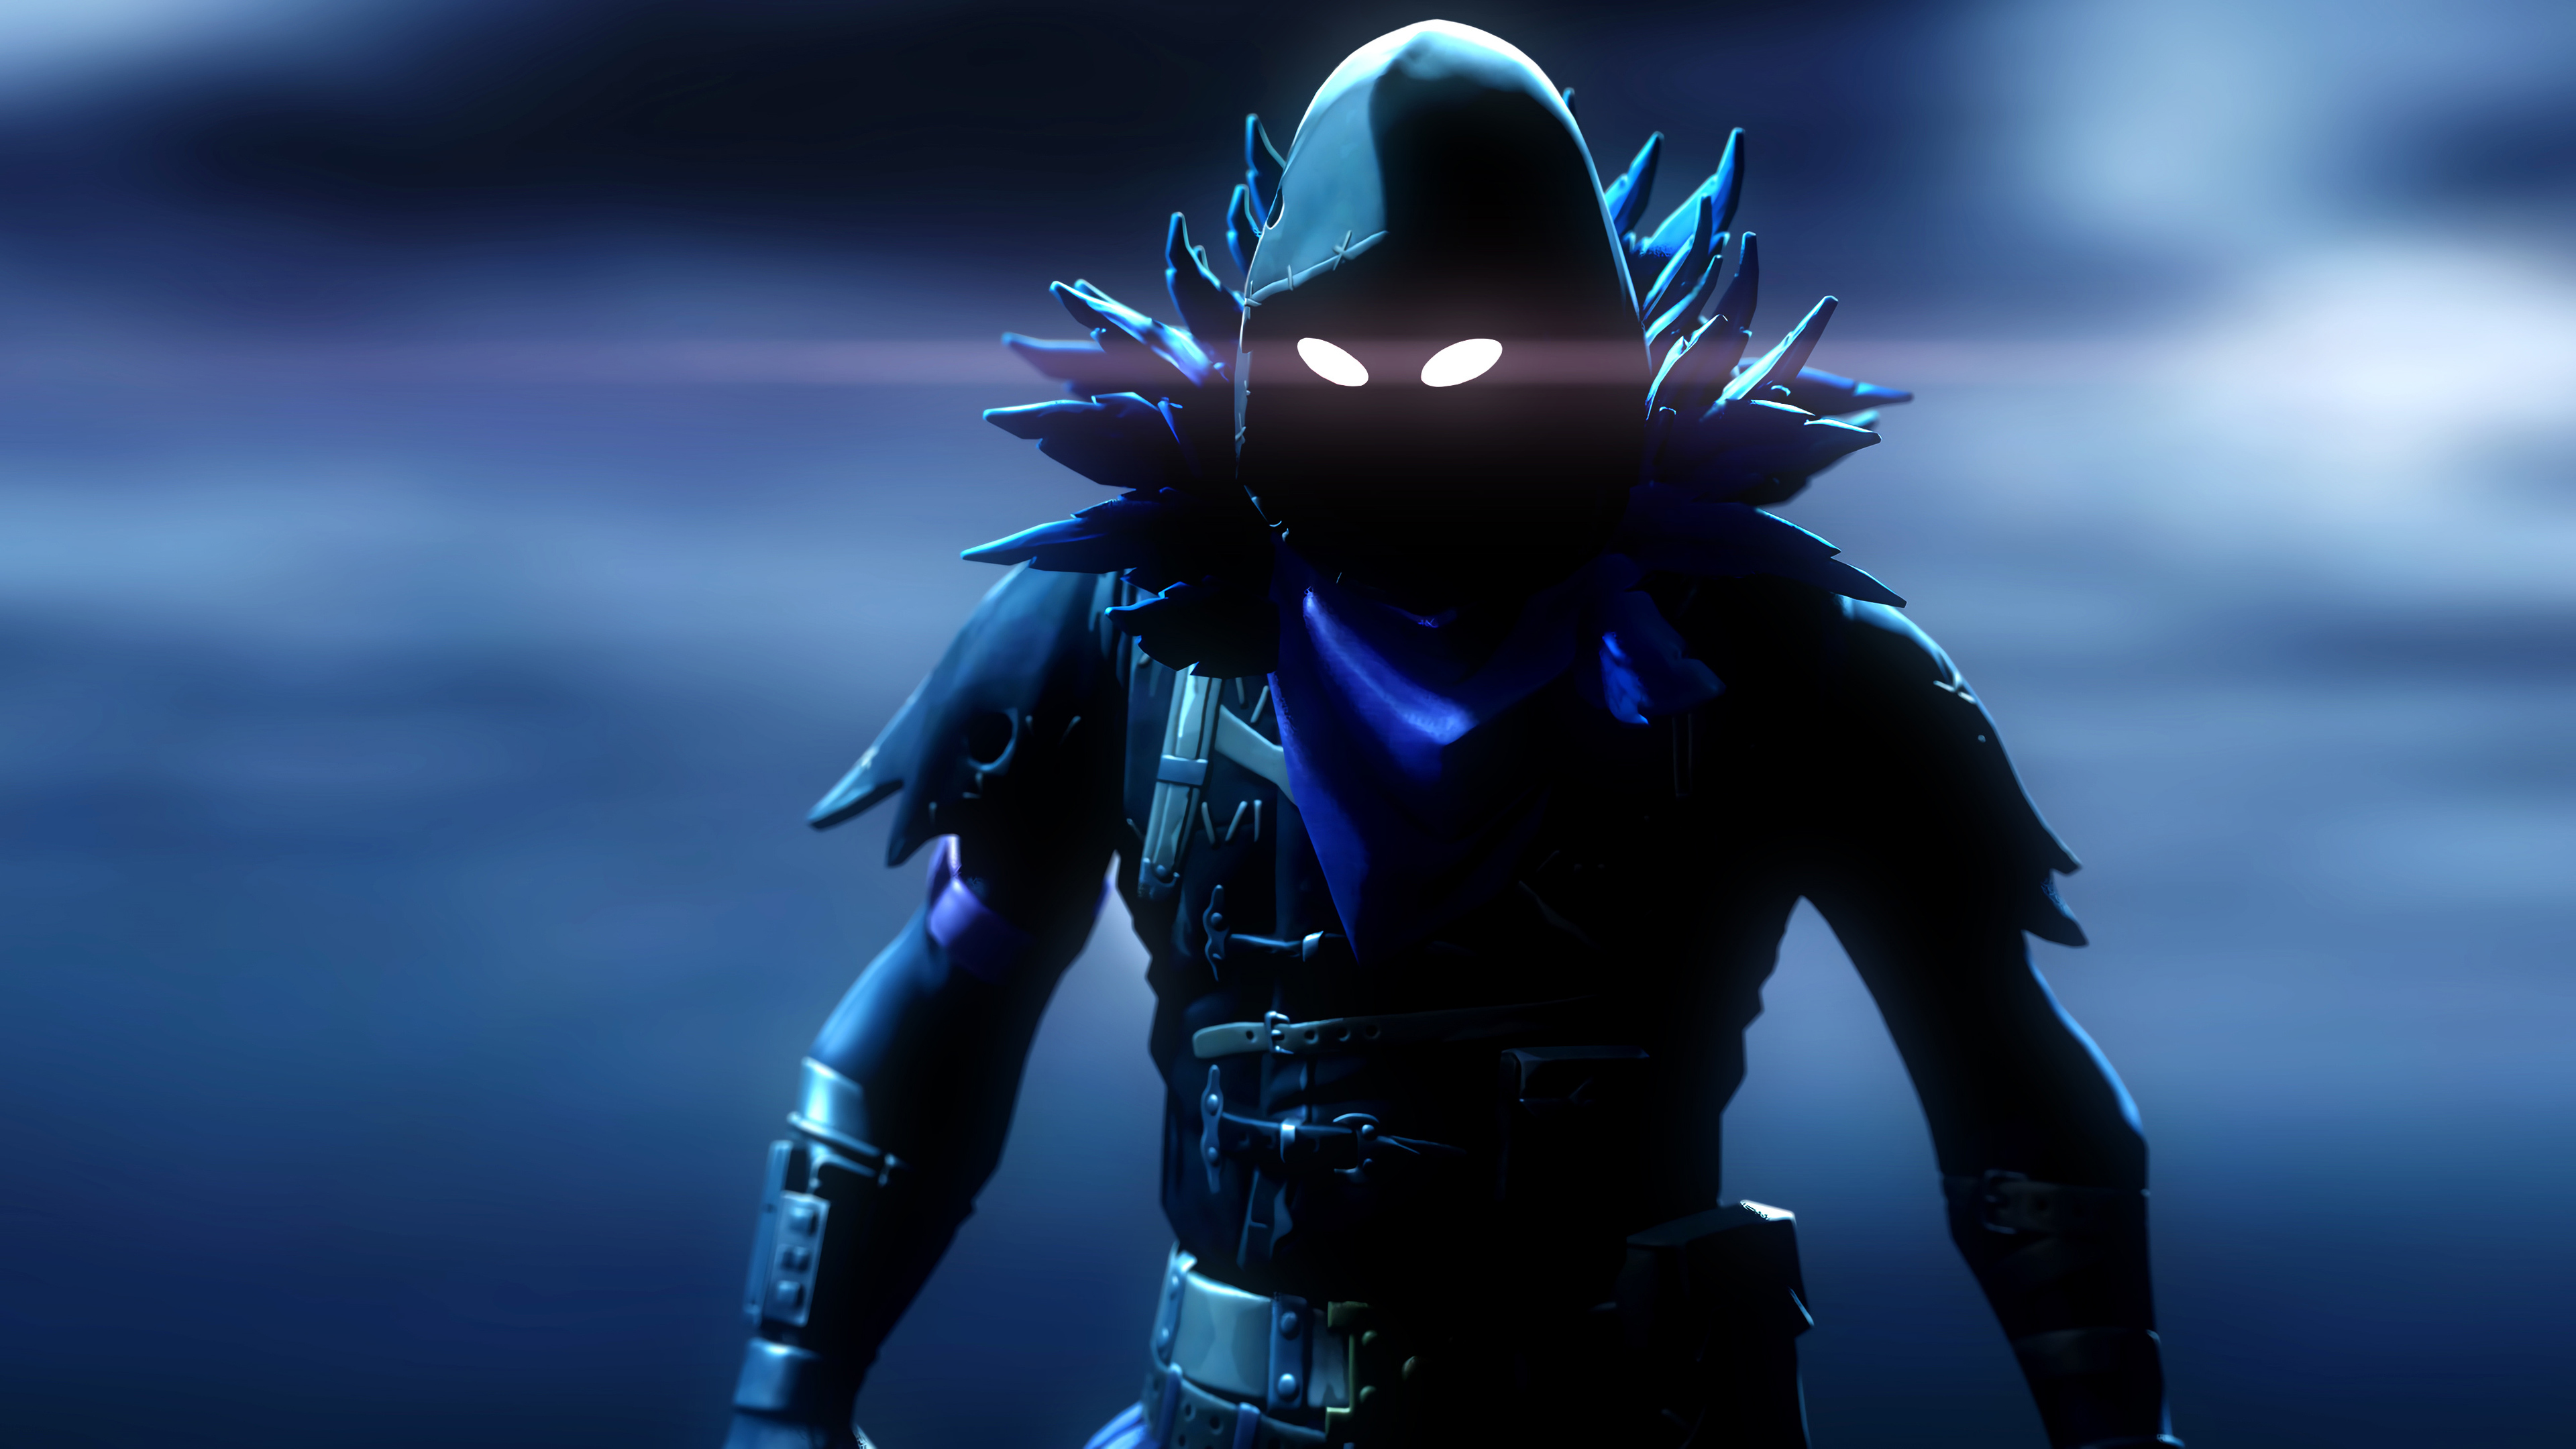 Raven fortnite 4k ps games wallpapers hd wallpapers - 4k fortnite wallpaper ...